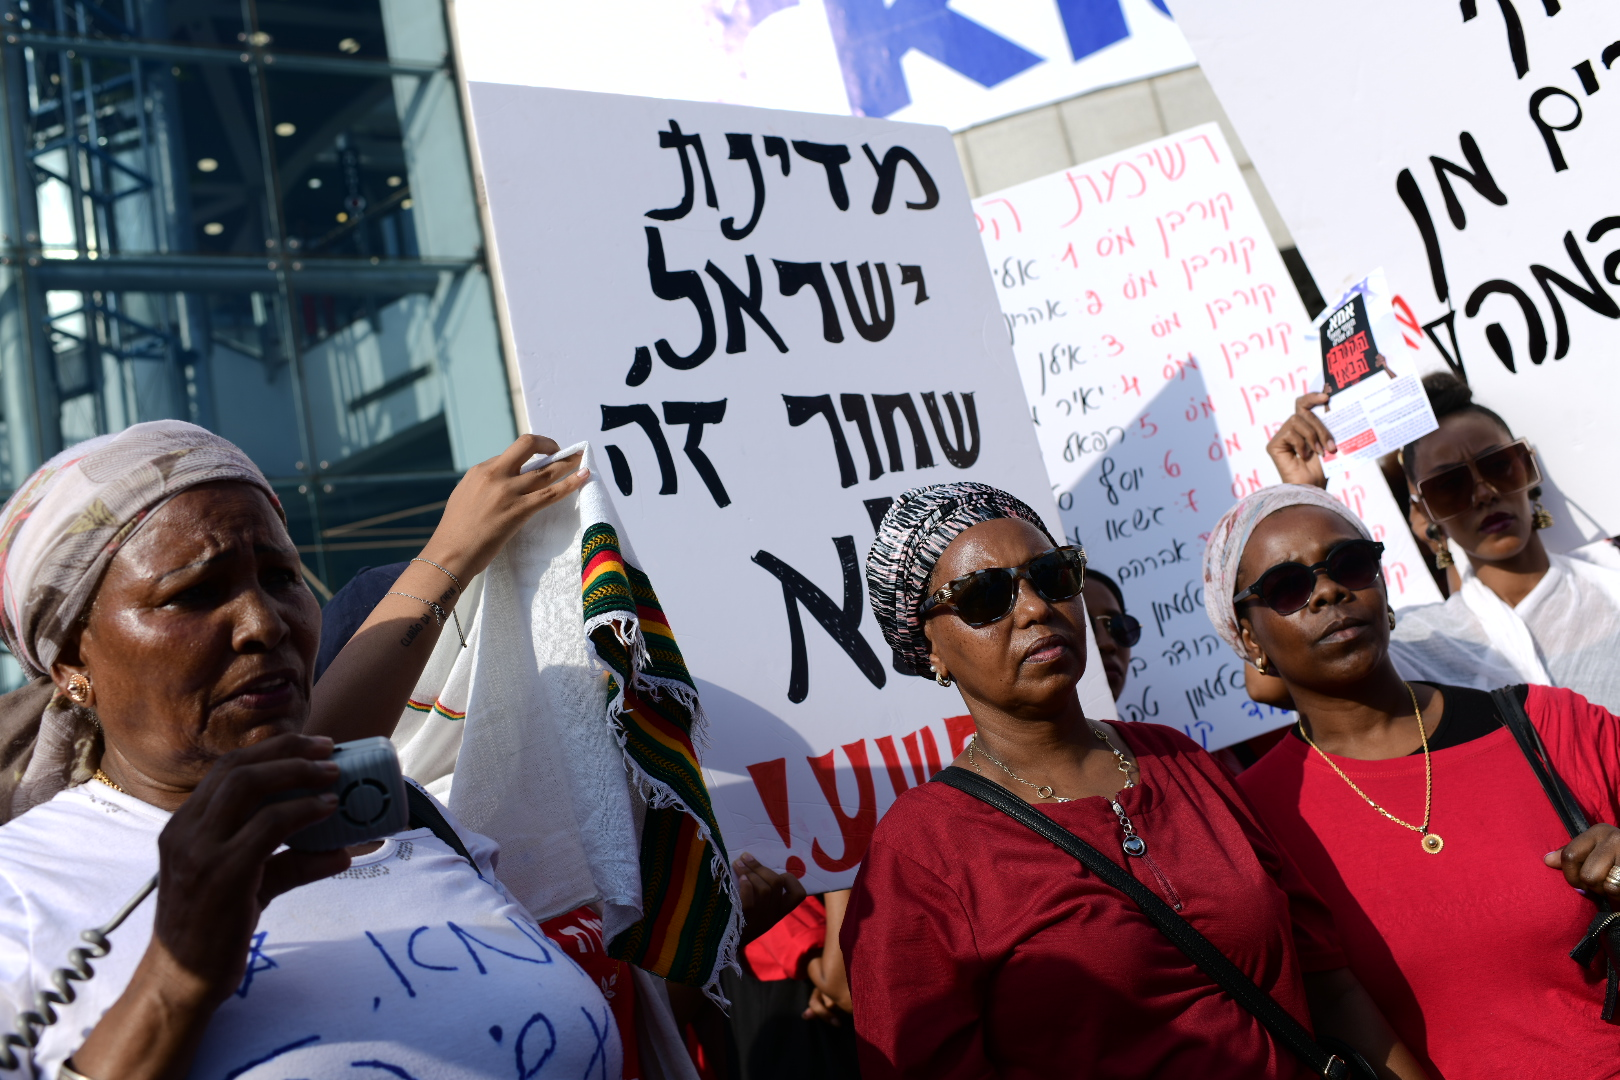 Ethiopians and supporters take part in a protest against police violence and discrimination following the death of 19-year-old Ethiopian, Solomon Tekah who was shot and killed few days ago in Kiryat Haim by an off-duty police officer, in Tel Aviv, July 8, 2019. Photo by Tomer Neuberg/Flash90